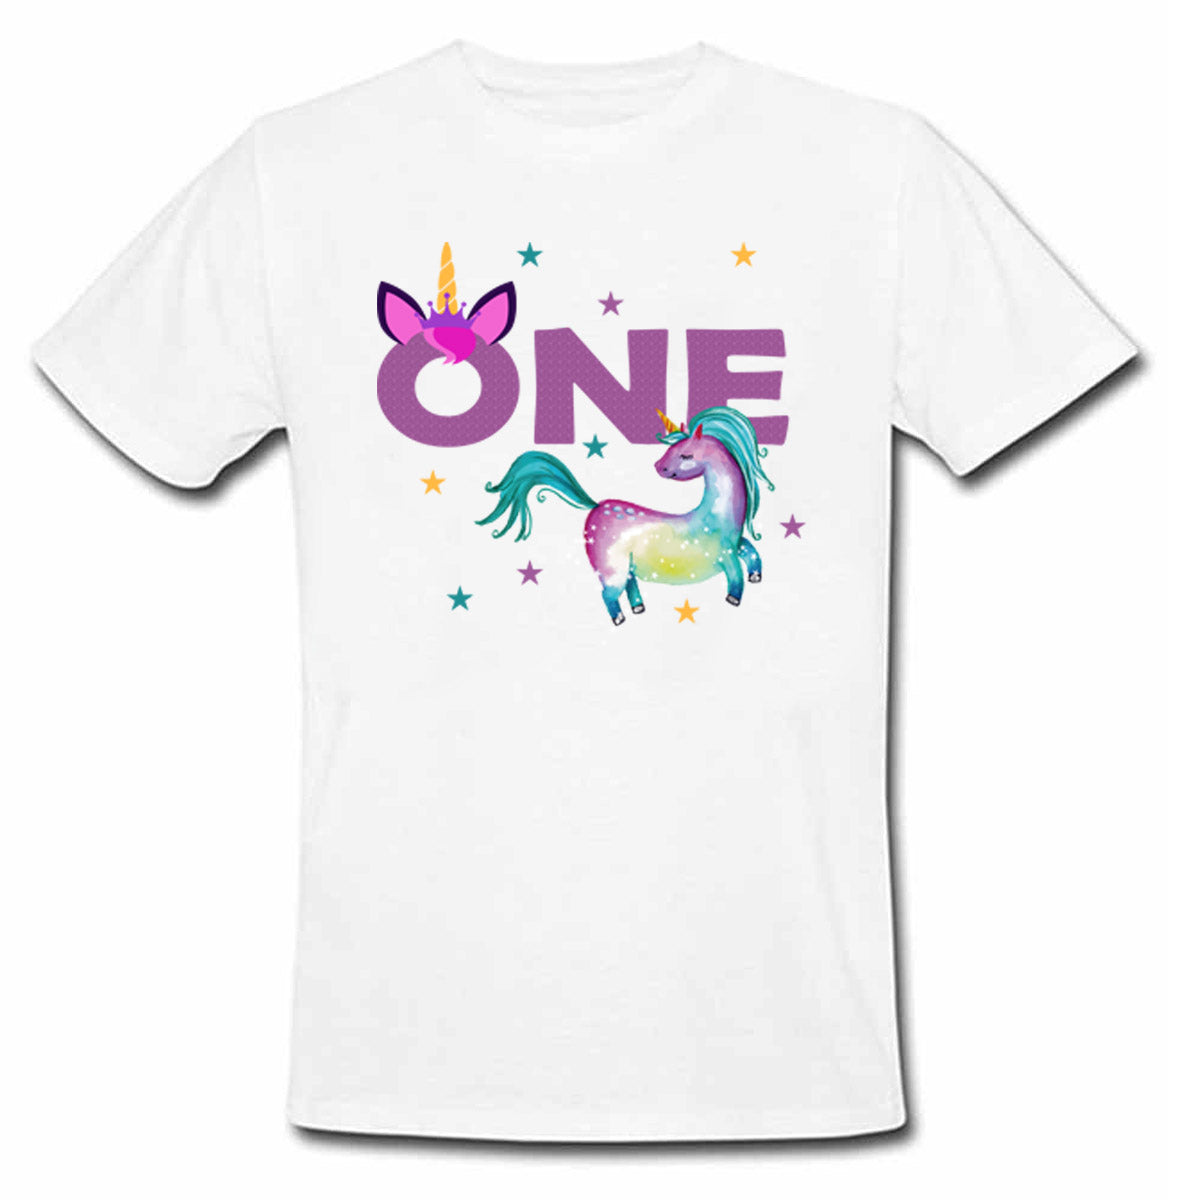 Sprinklecart Customized Name and Age Printed 1st Birthday Unicorn Poly-Cotton T Shirt for Kids (White)